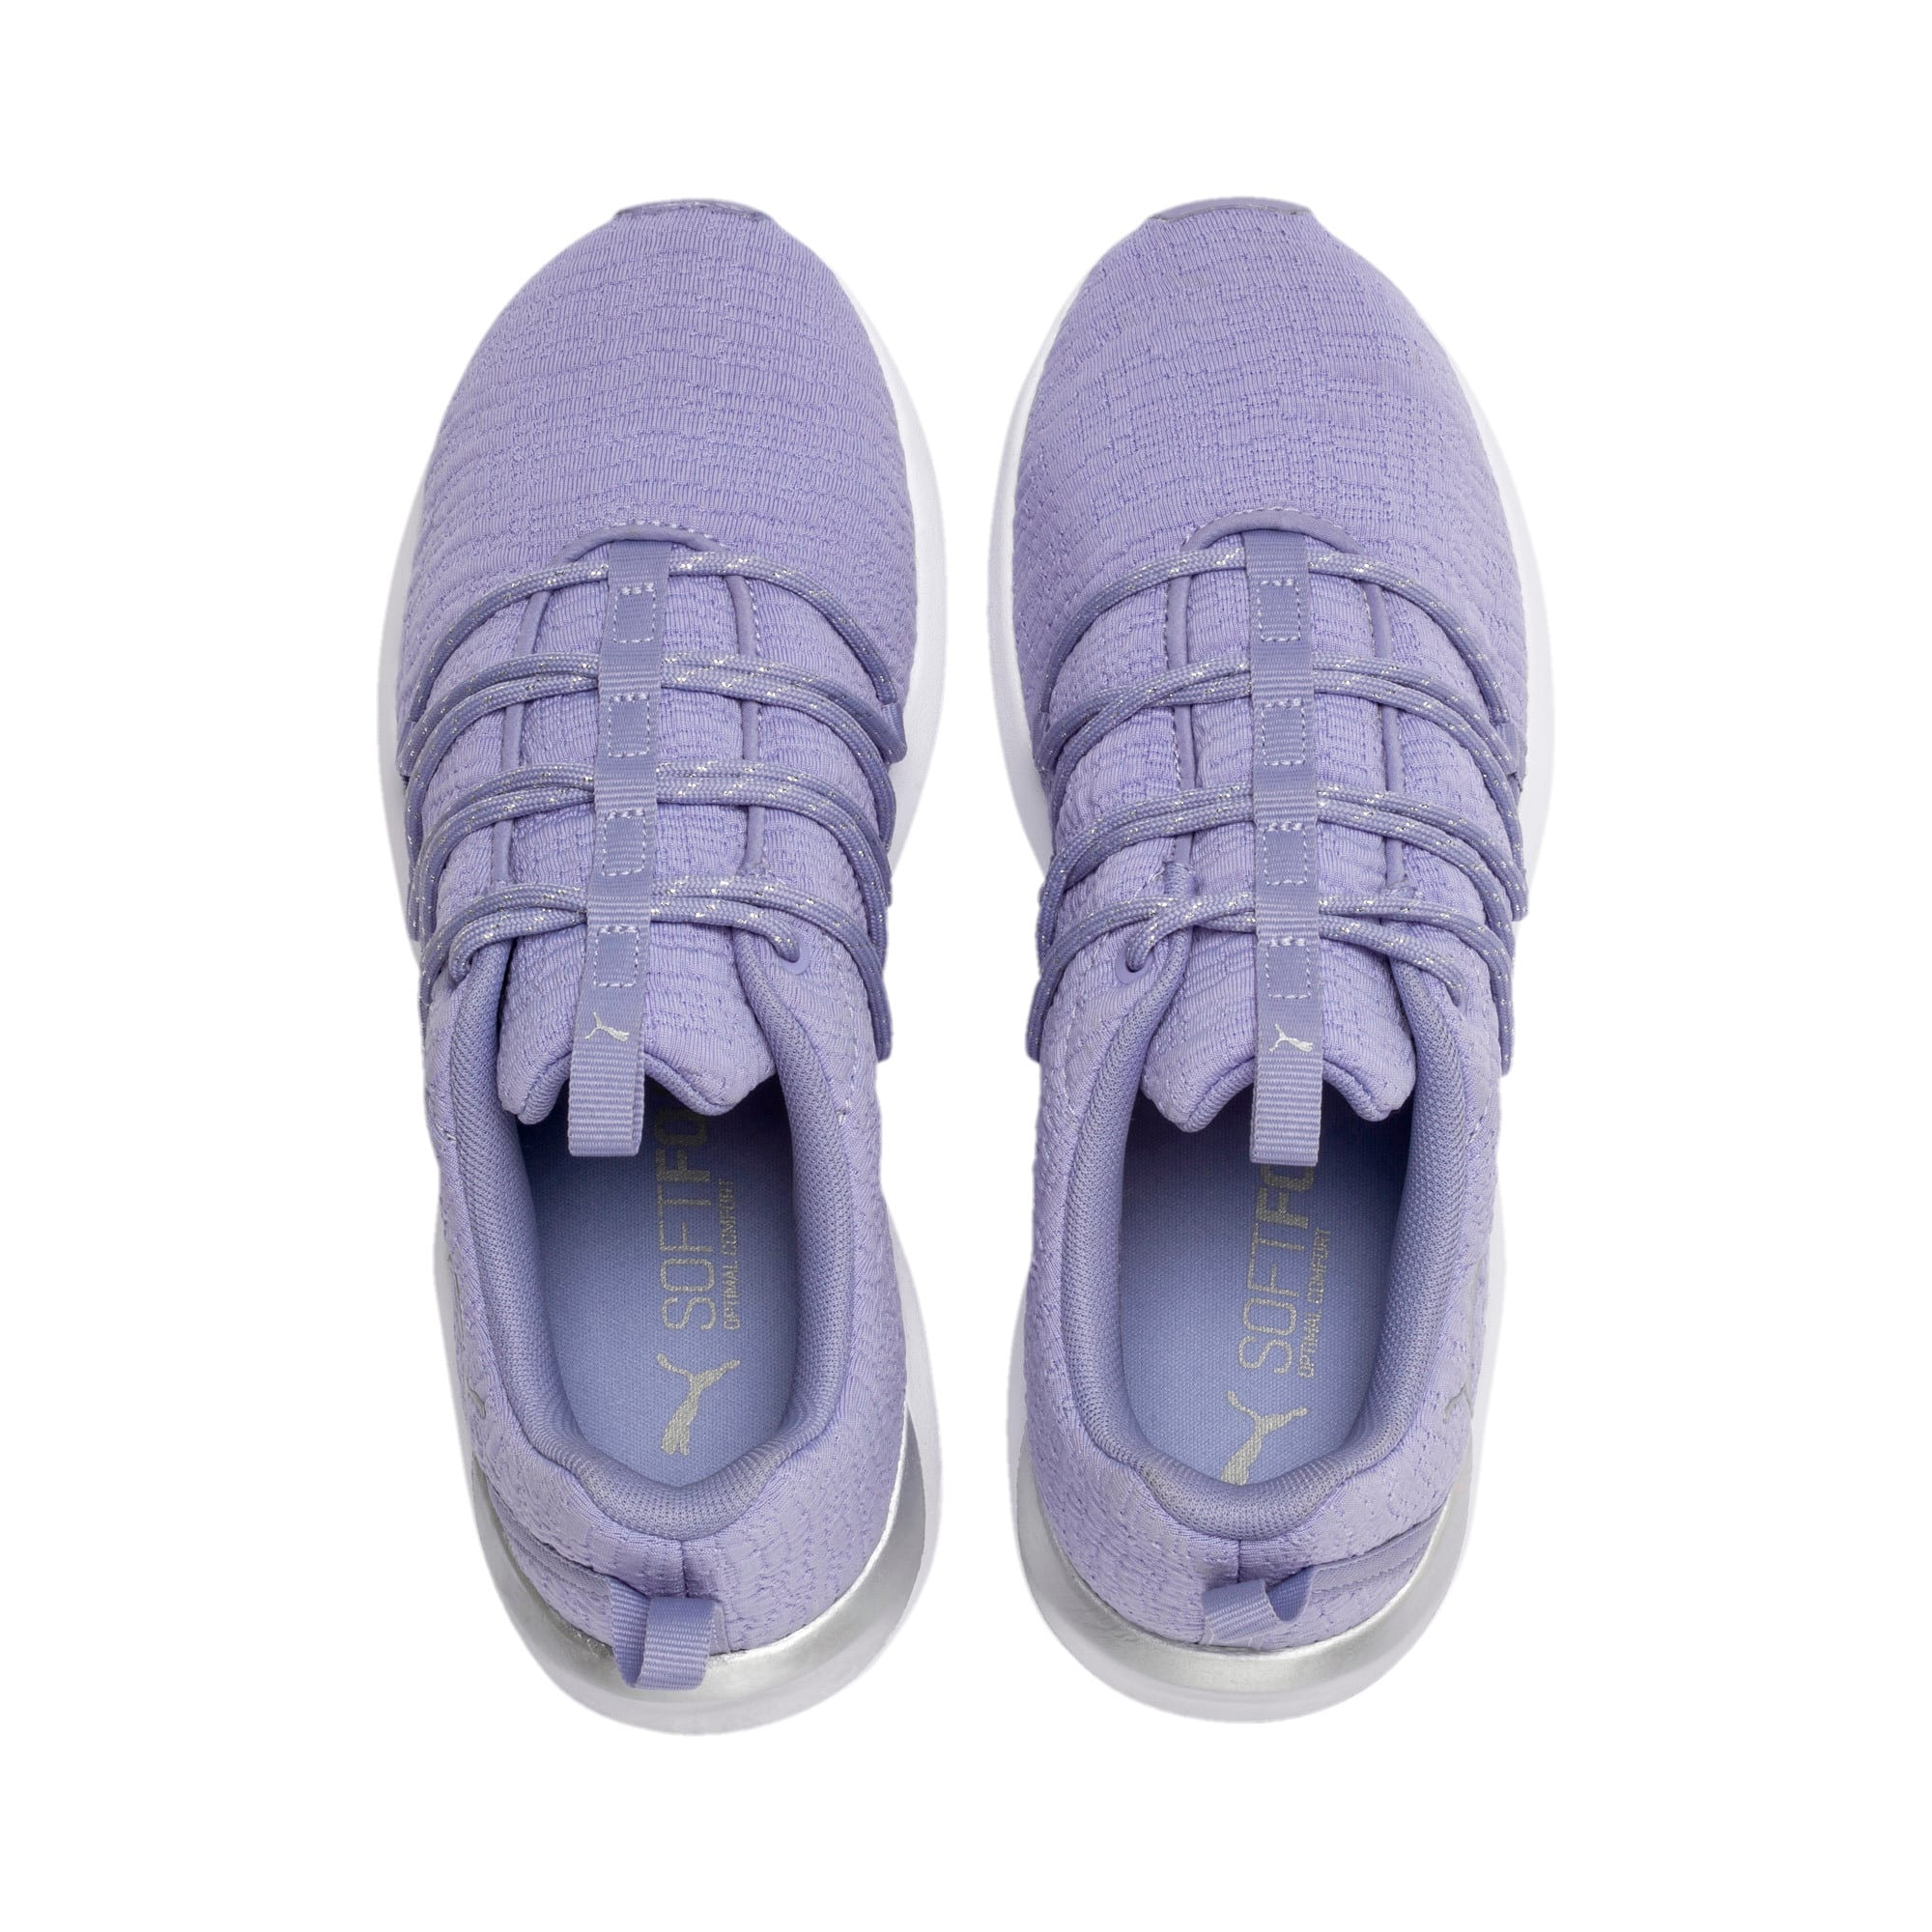 Thumbnail 6 of Prowl Alt Metallic Women's Training Shoes, Sweet Lavender-Puma White, medium